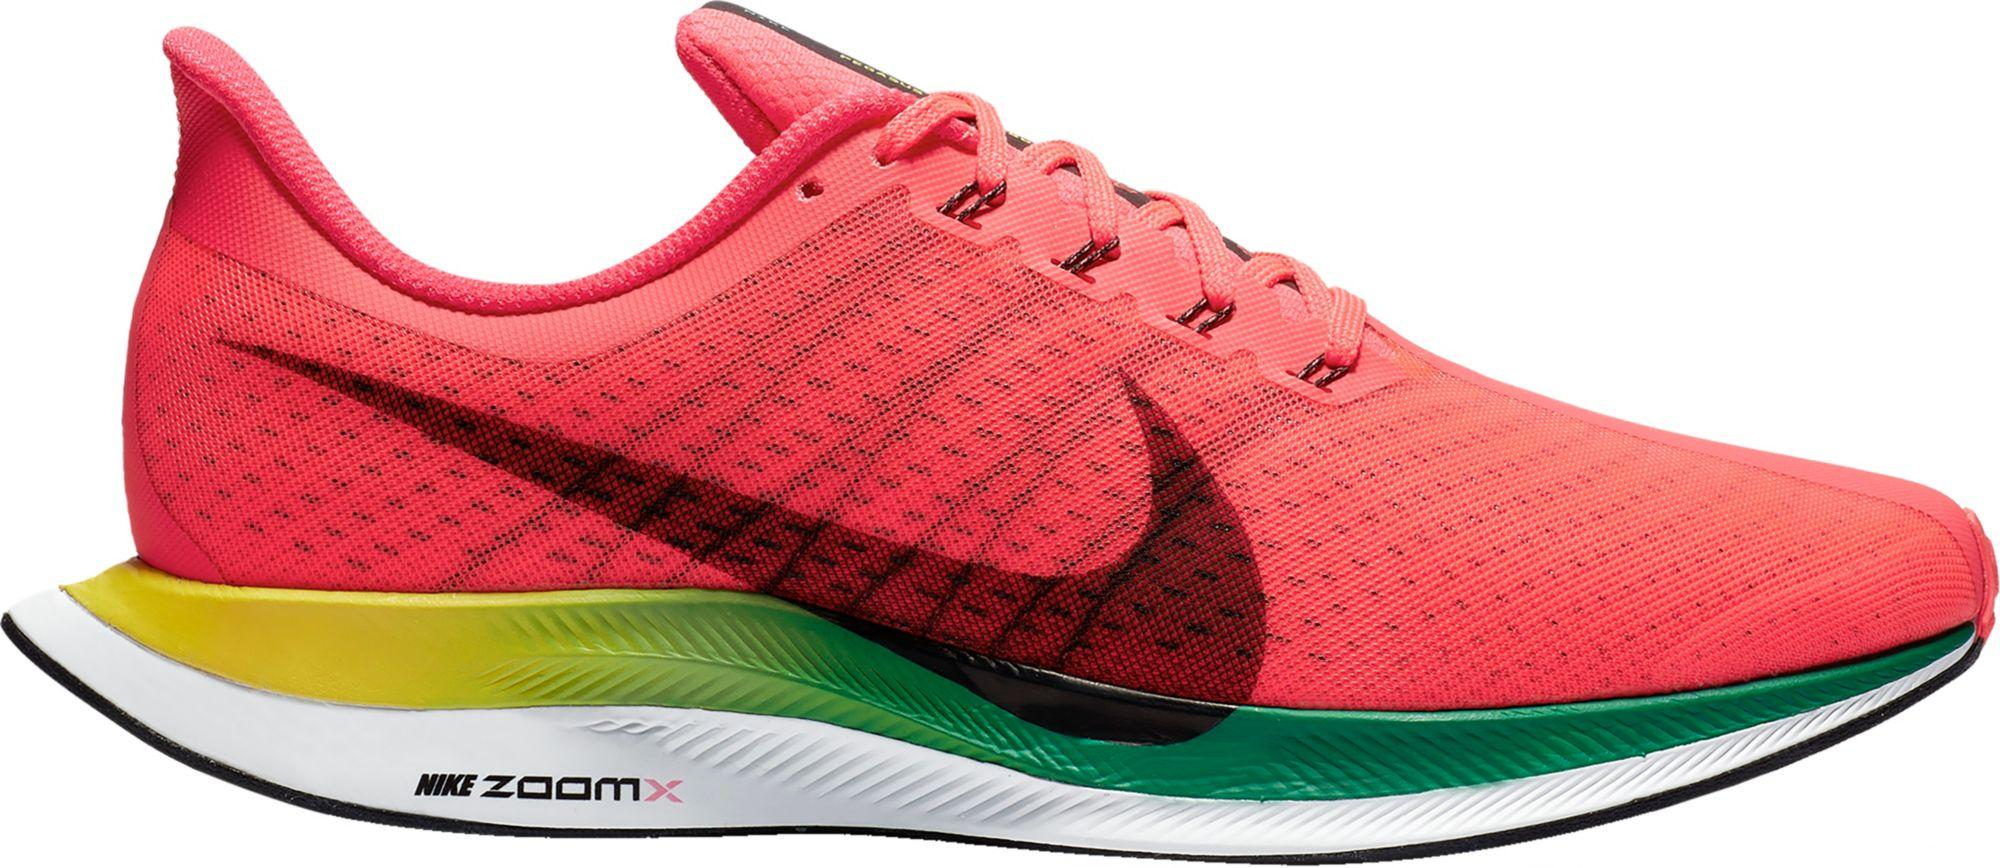 502be0495dfe Lyst - Nike Air Zoom Pegasus 35 Turbo Running Shoes in Red for Men